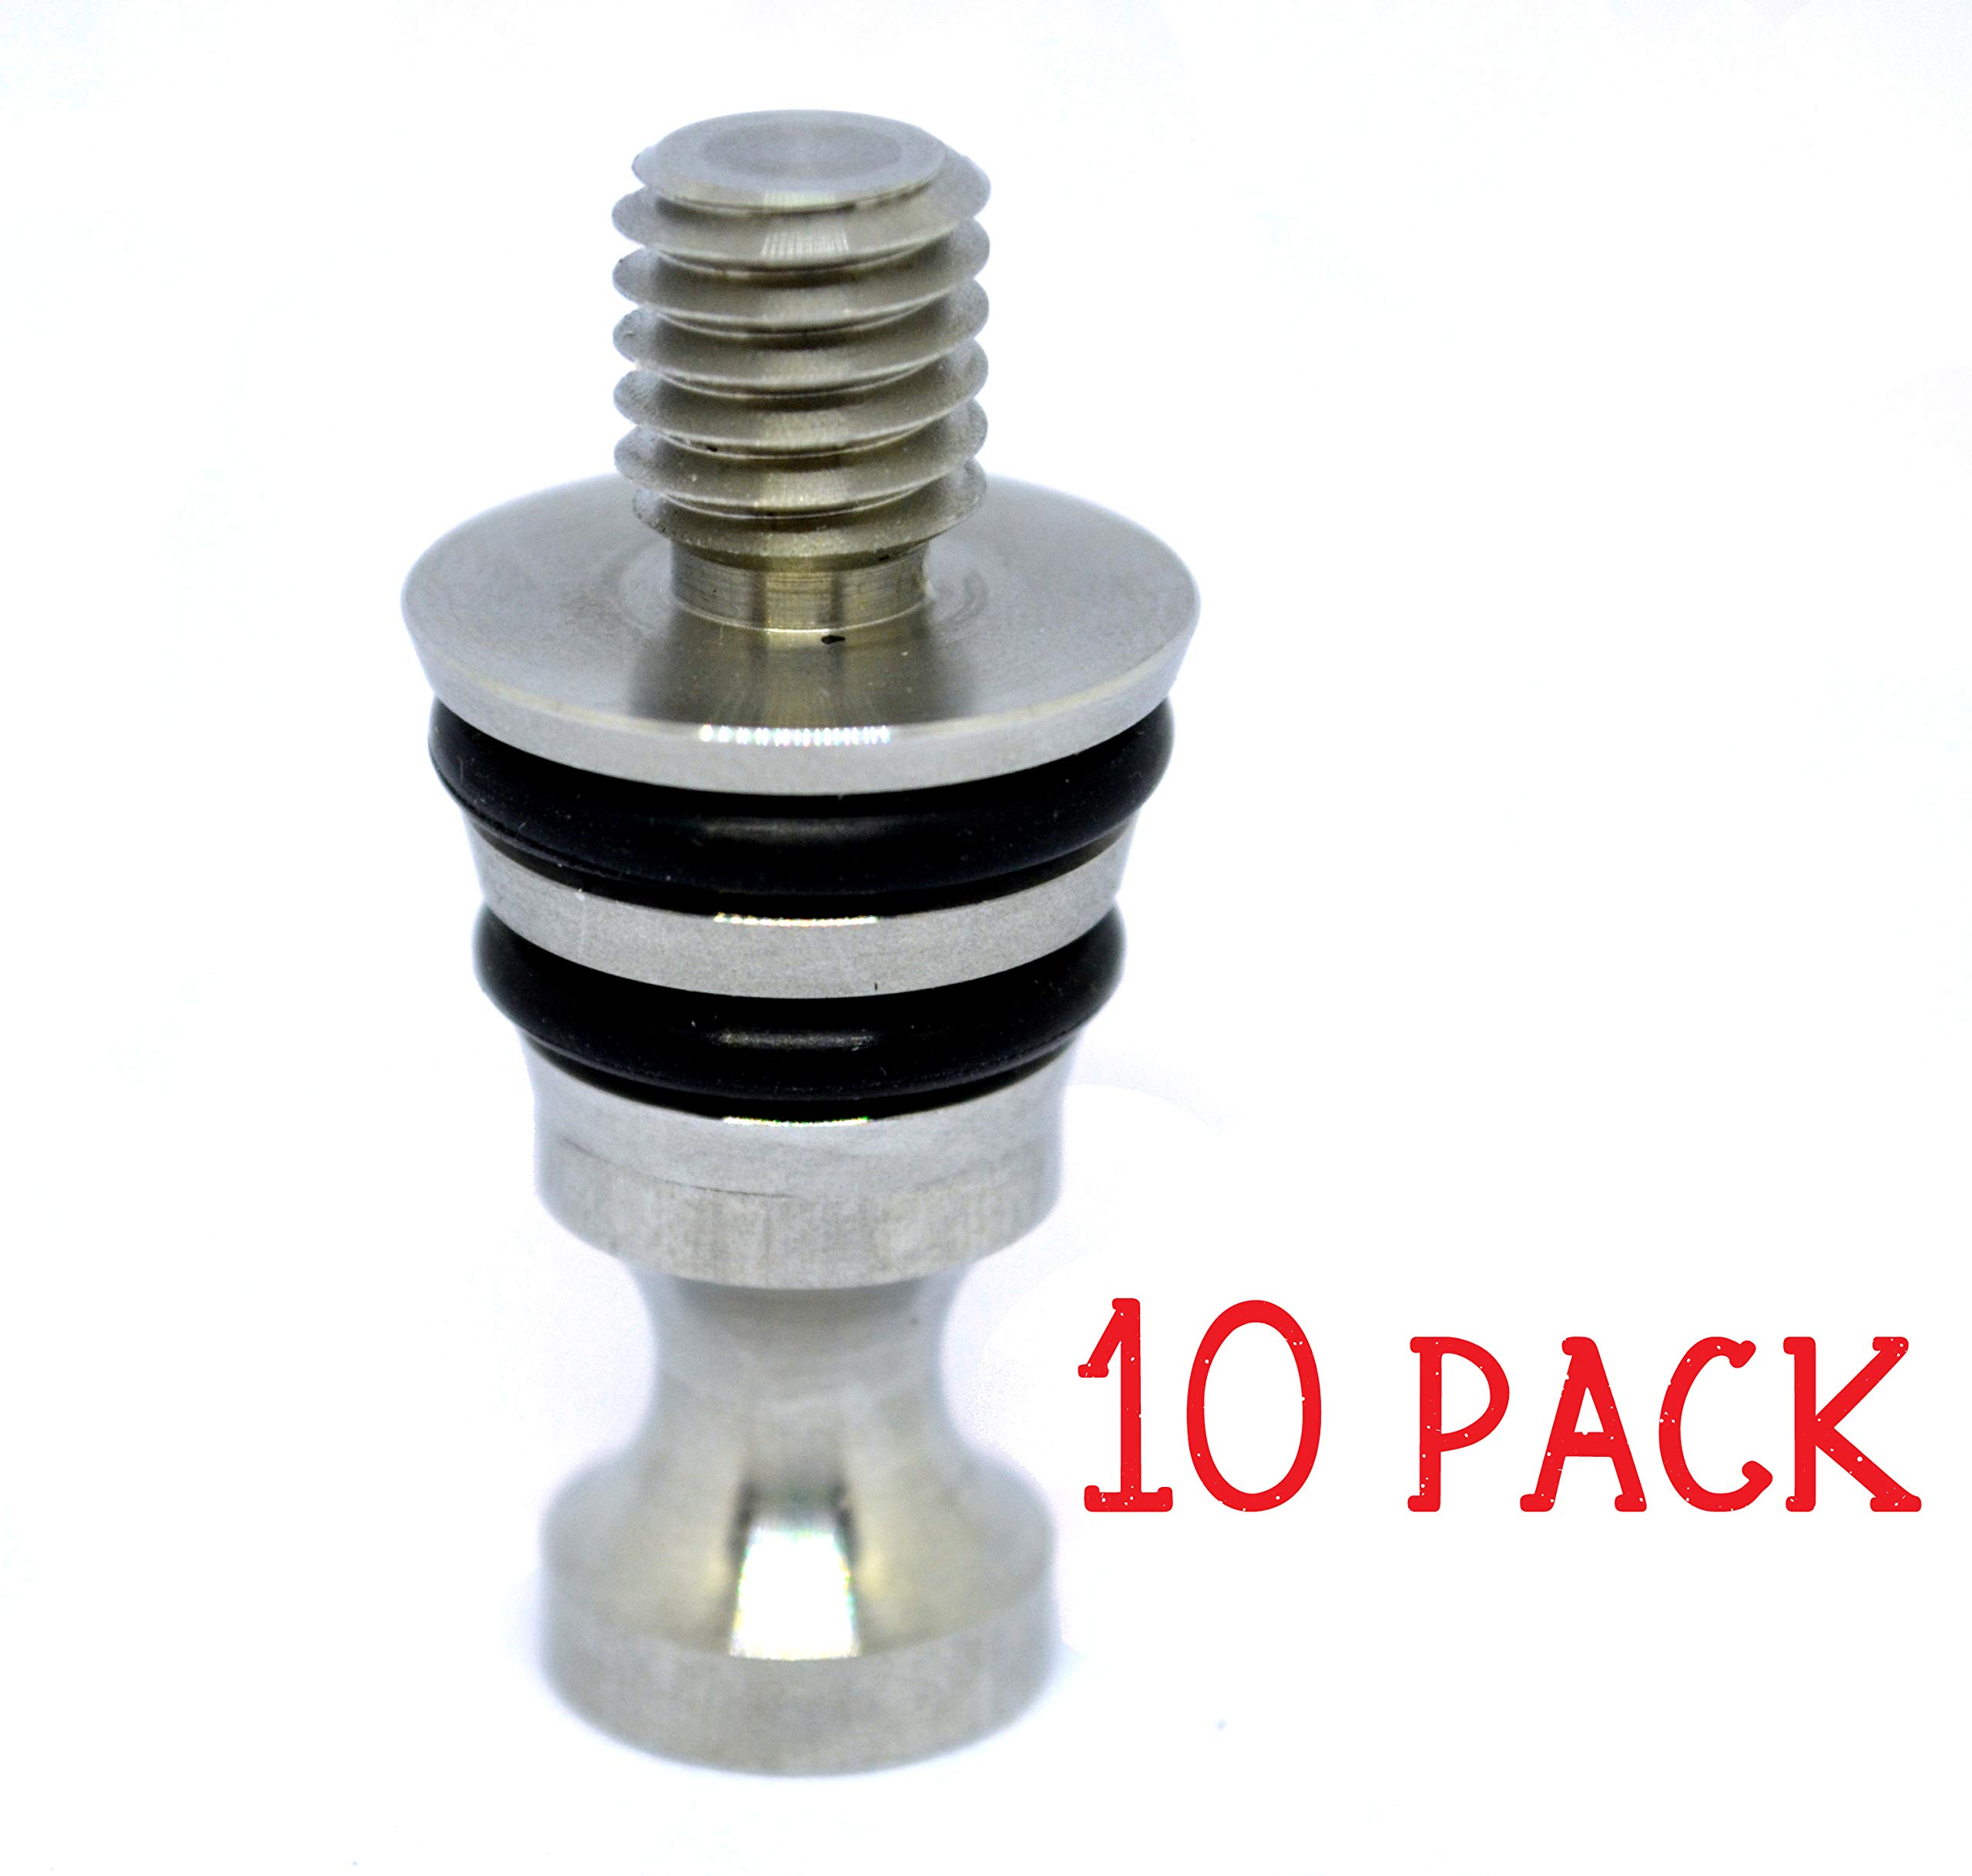 10 Pack Stainless Steel Standing Wine Bottle Stopper Hardware Kit for Wood Turning by C and C Stock